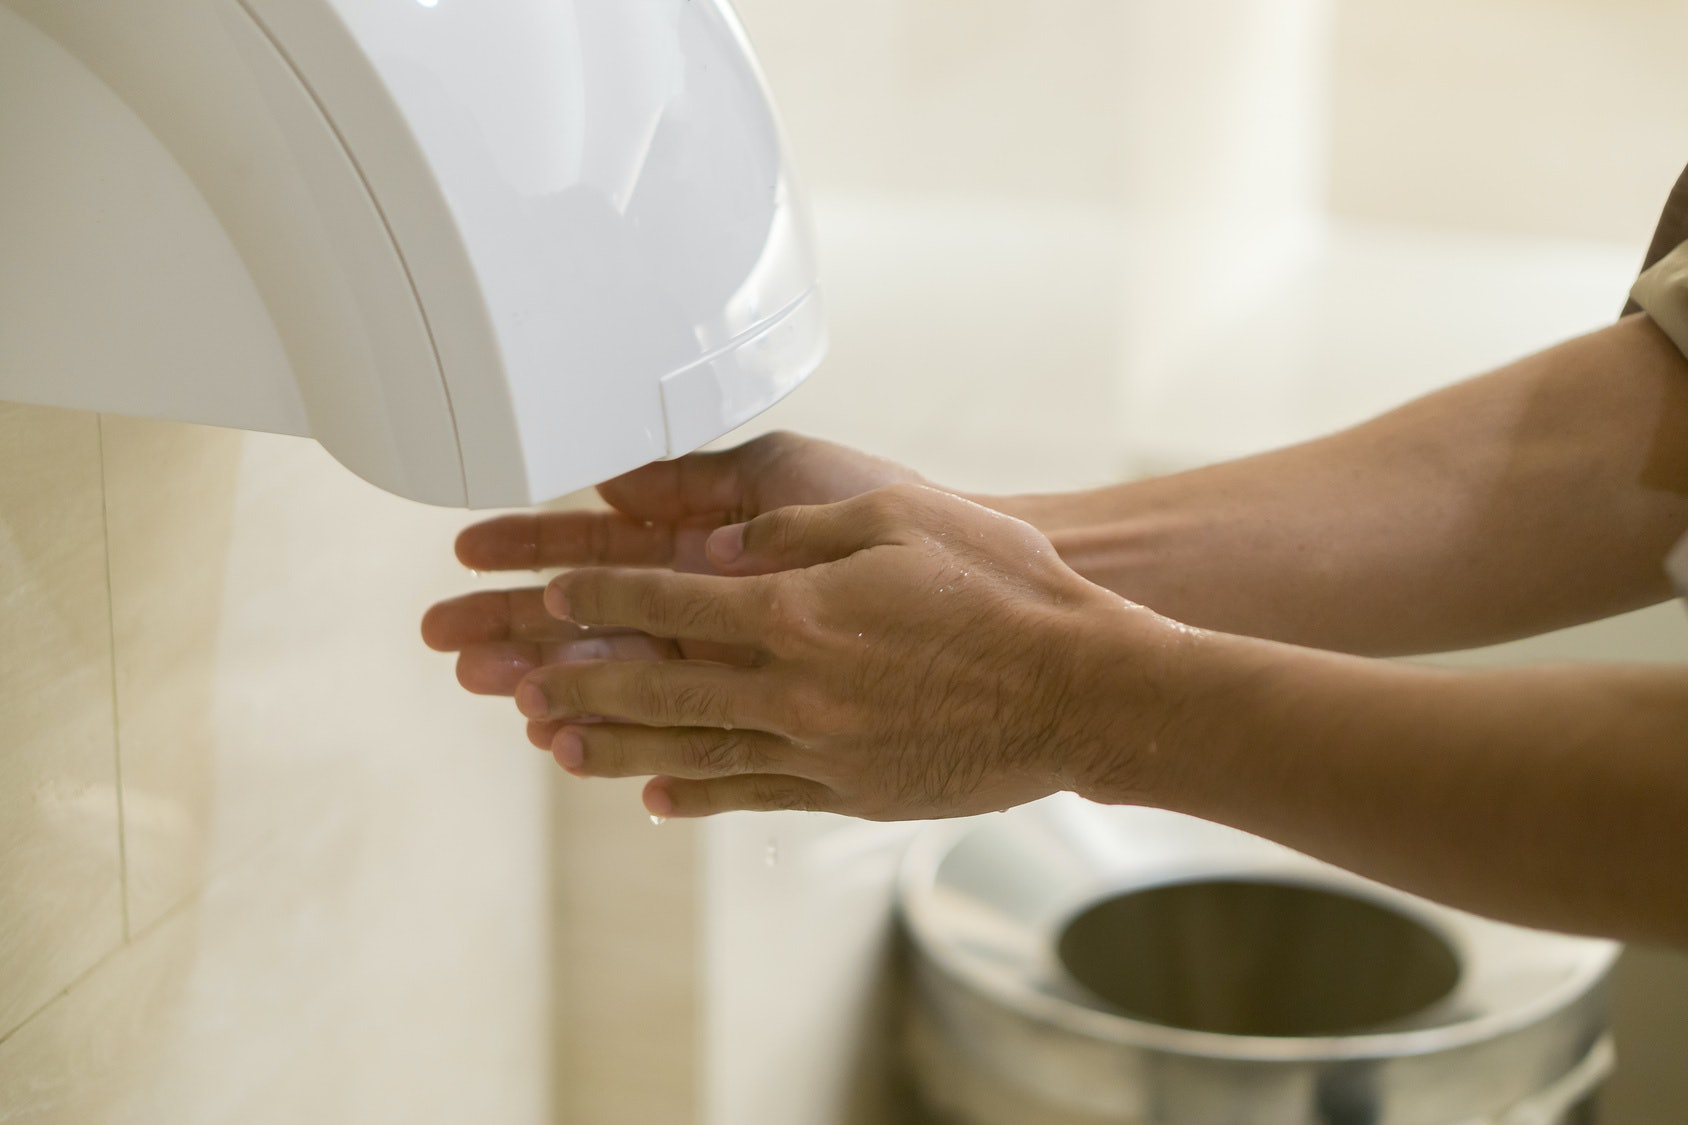 Are Bathroom Hand Dryers Sanitary? A New Study Found They May Spray You  With More Bacteria Than Youu0027d Think